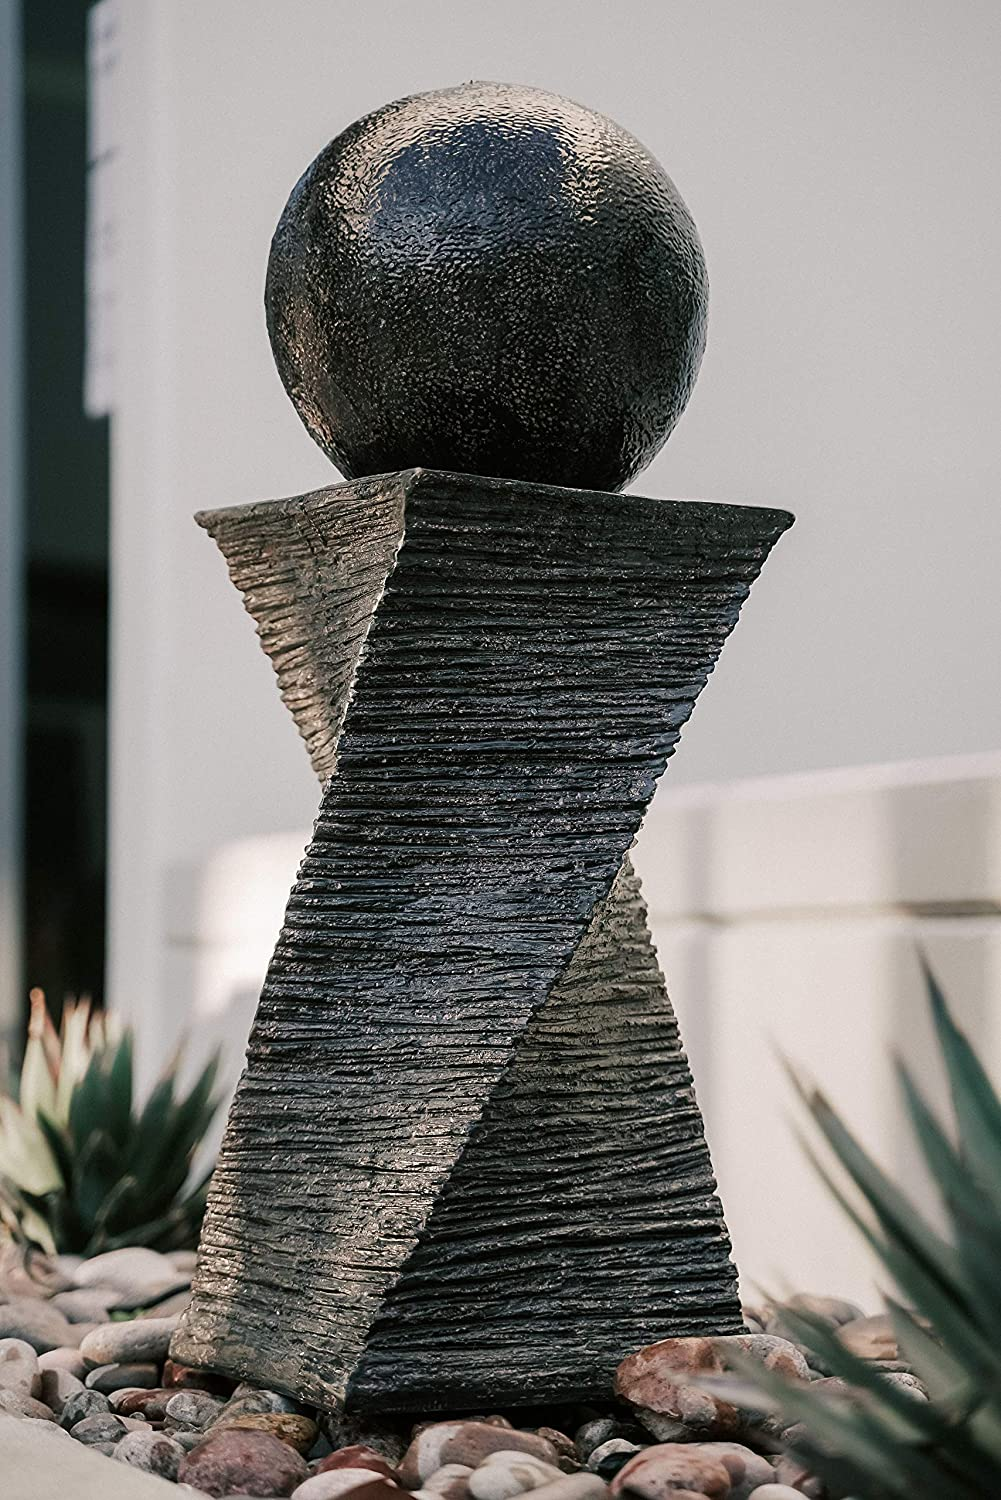 XBrand CR3012FTBK Modern Curved Swirl Sphere Water Fountain, Indoor Outdoor Décor, 30 Inch Tall, Black